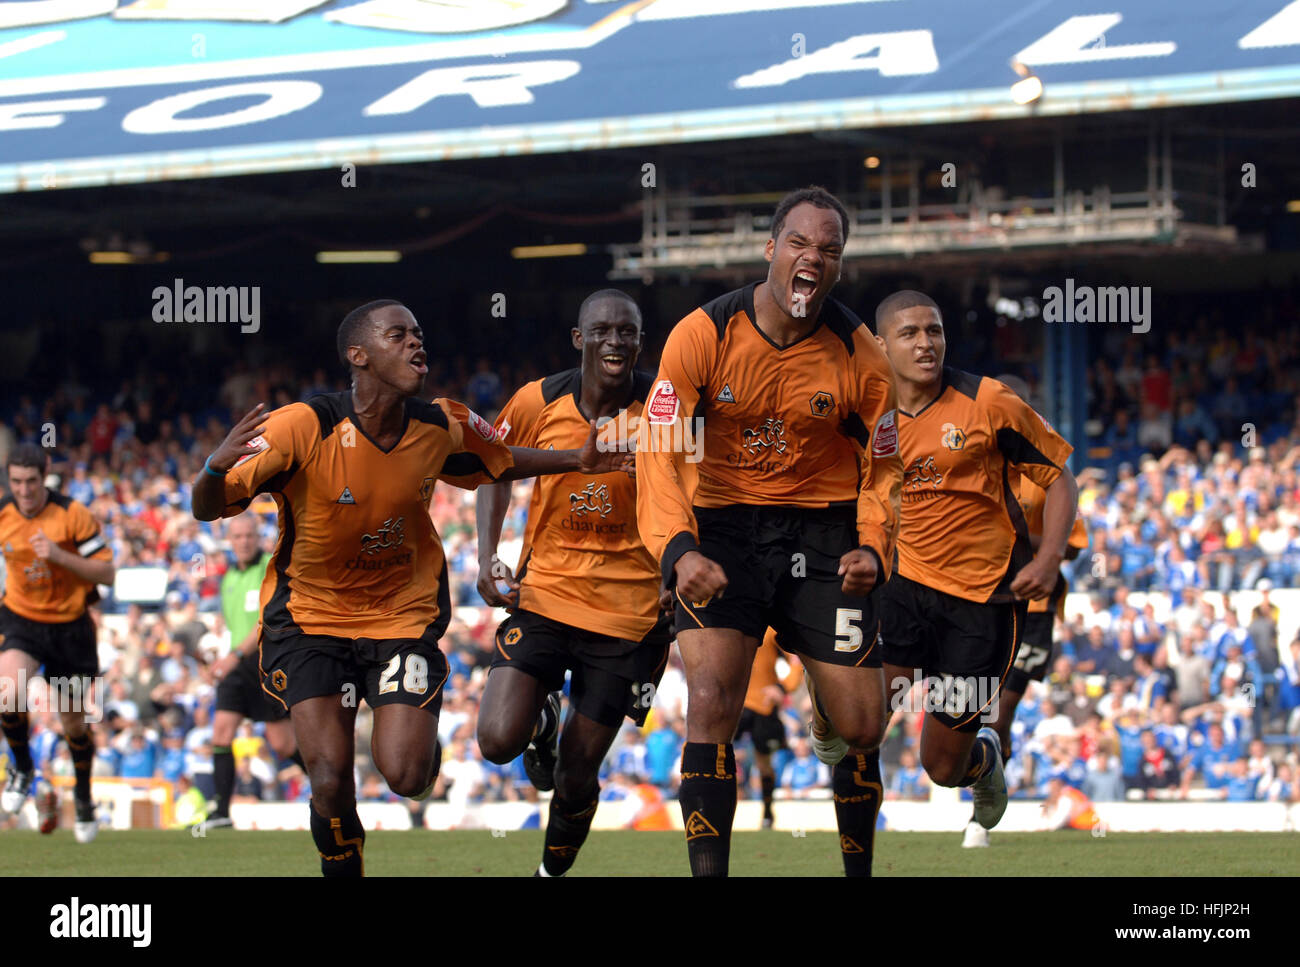 Footballer Joleon Lescott celebrates after scoring a goal for Wolves FC against Cardiff 2005 - Stock Image